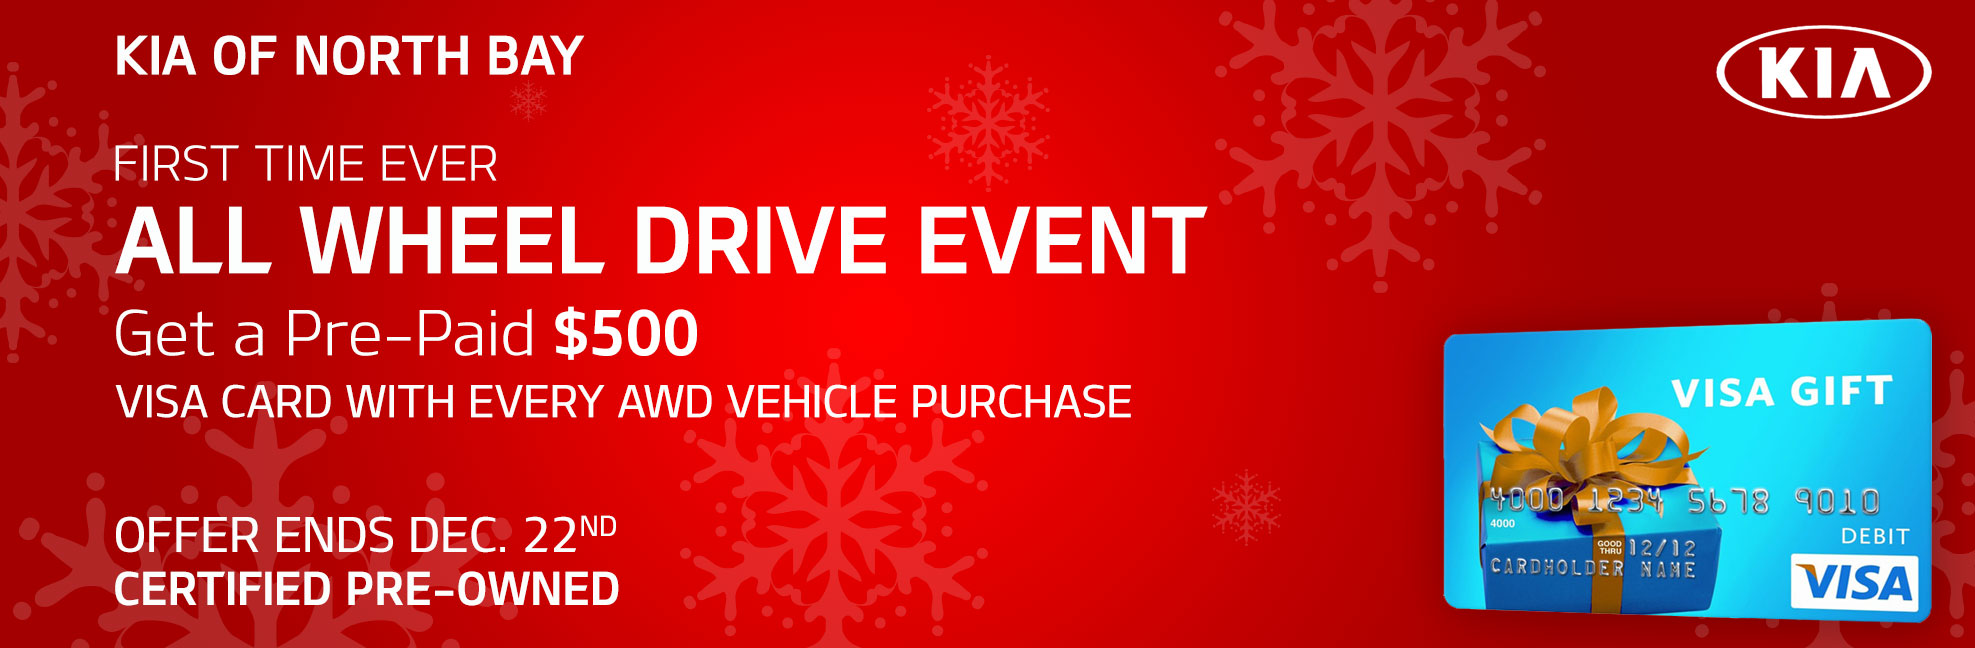 All Wheel Drive Event